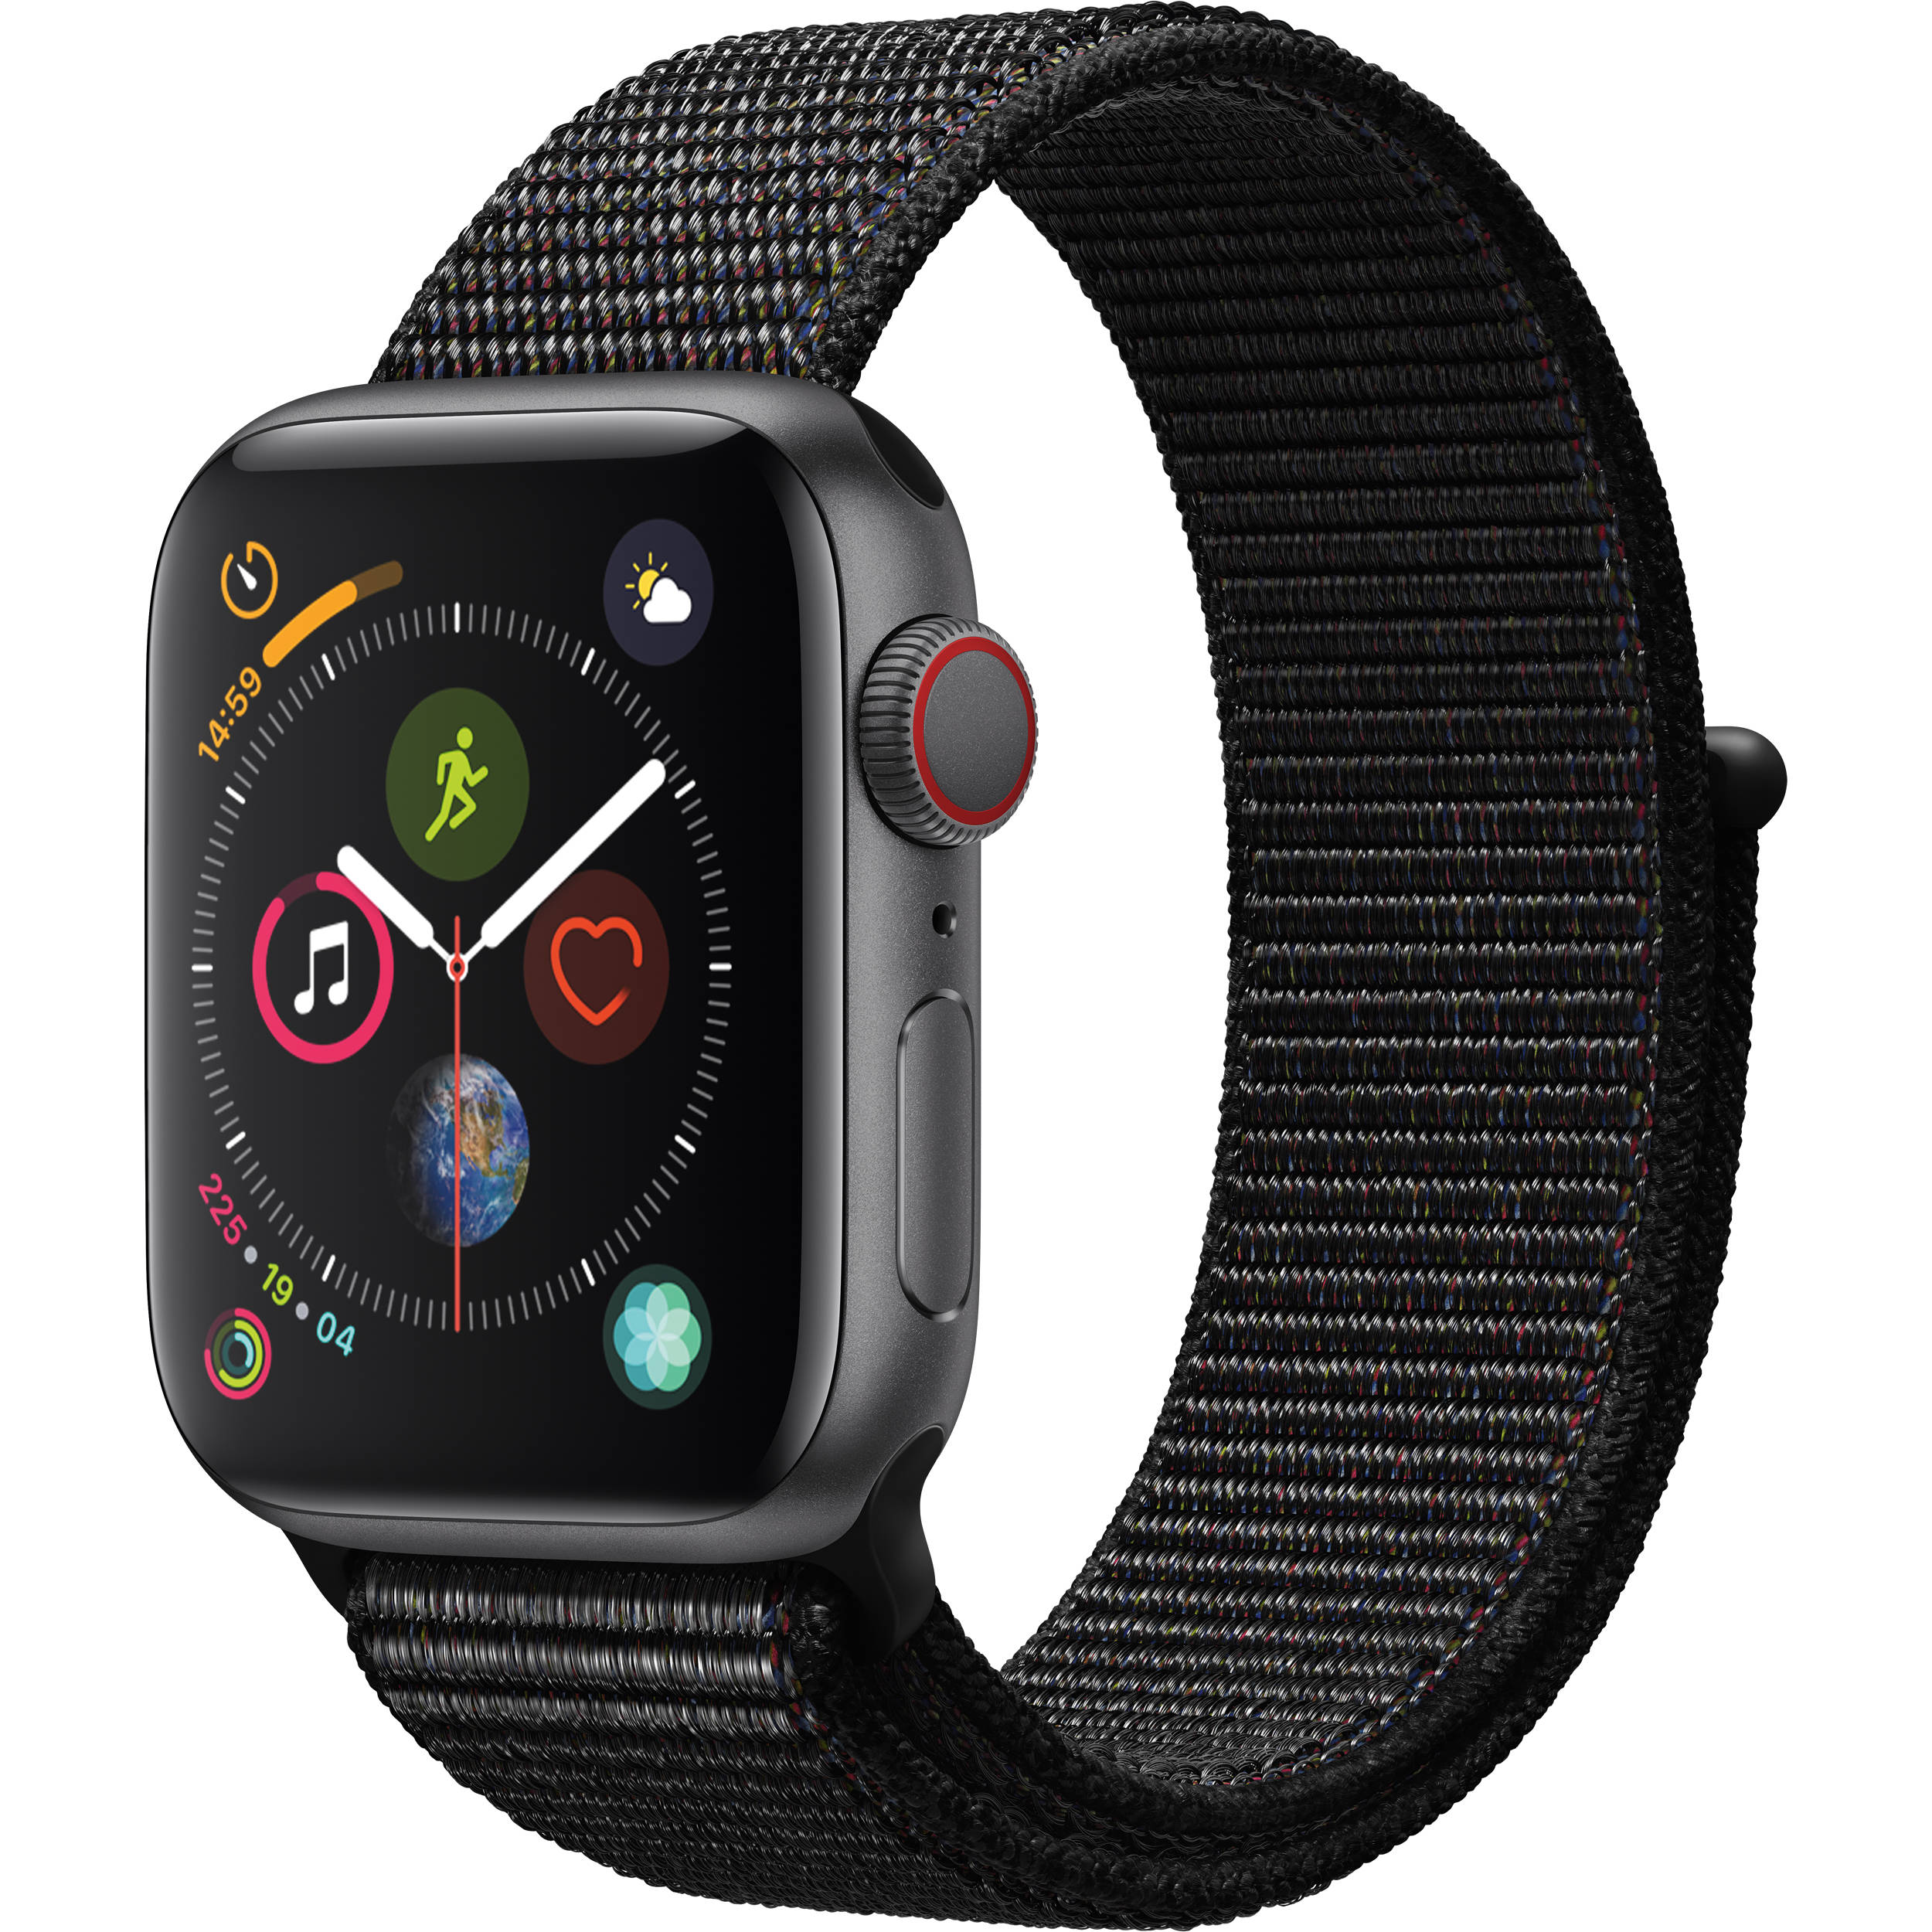 Apple Watch Series 4 B&H Photo Video